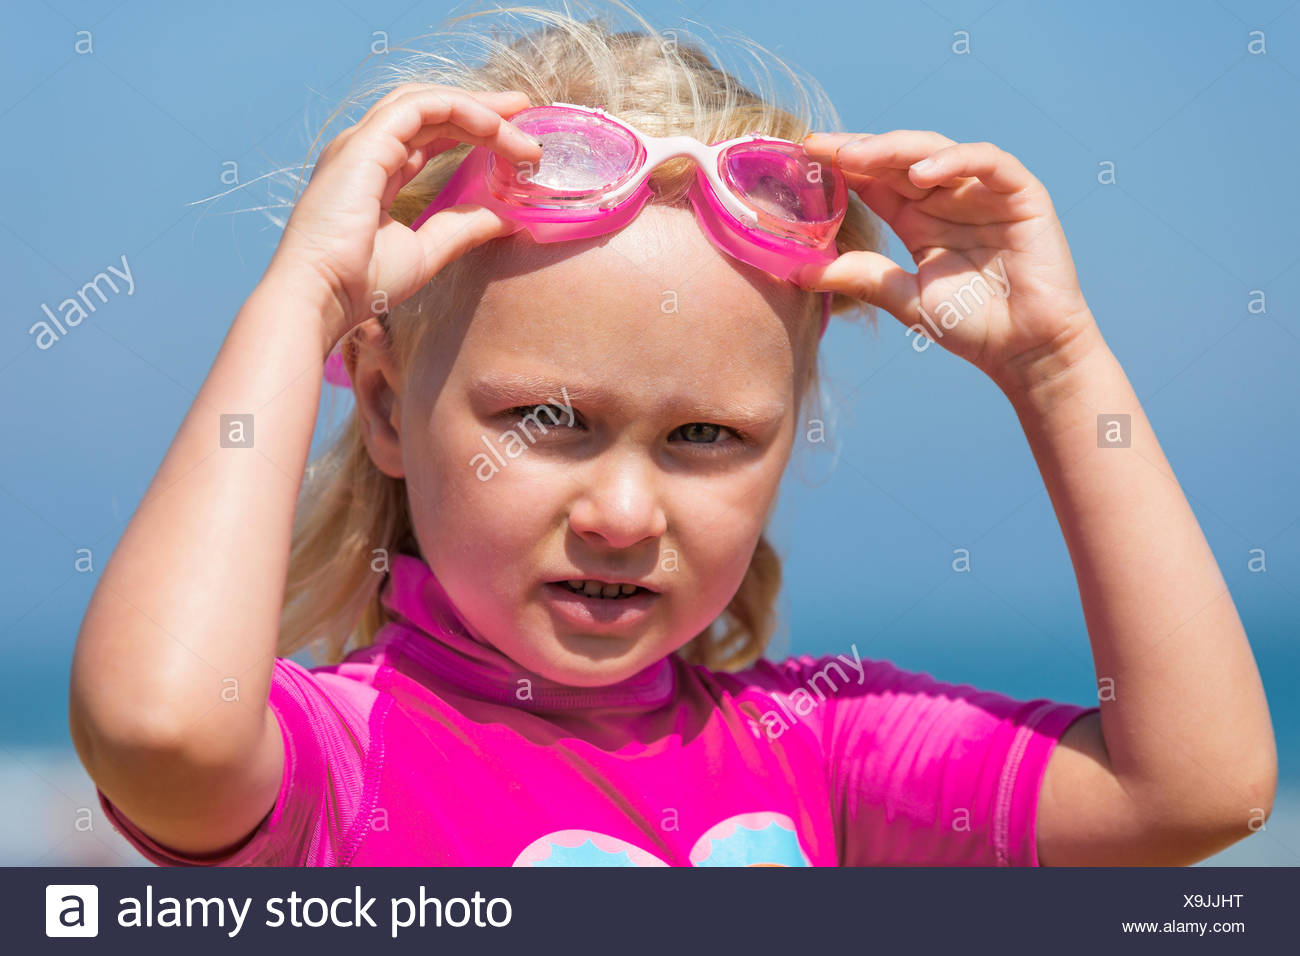 little girl at the beach in an anti-UV swimsuit putting her pink goggles on - Stock Image